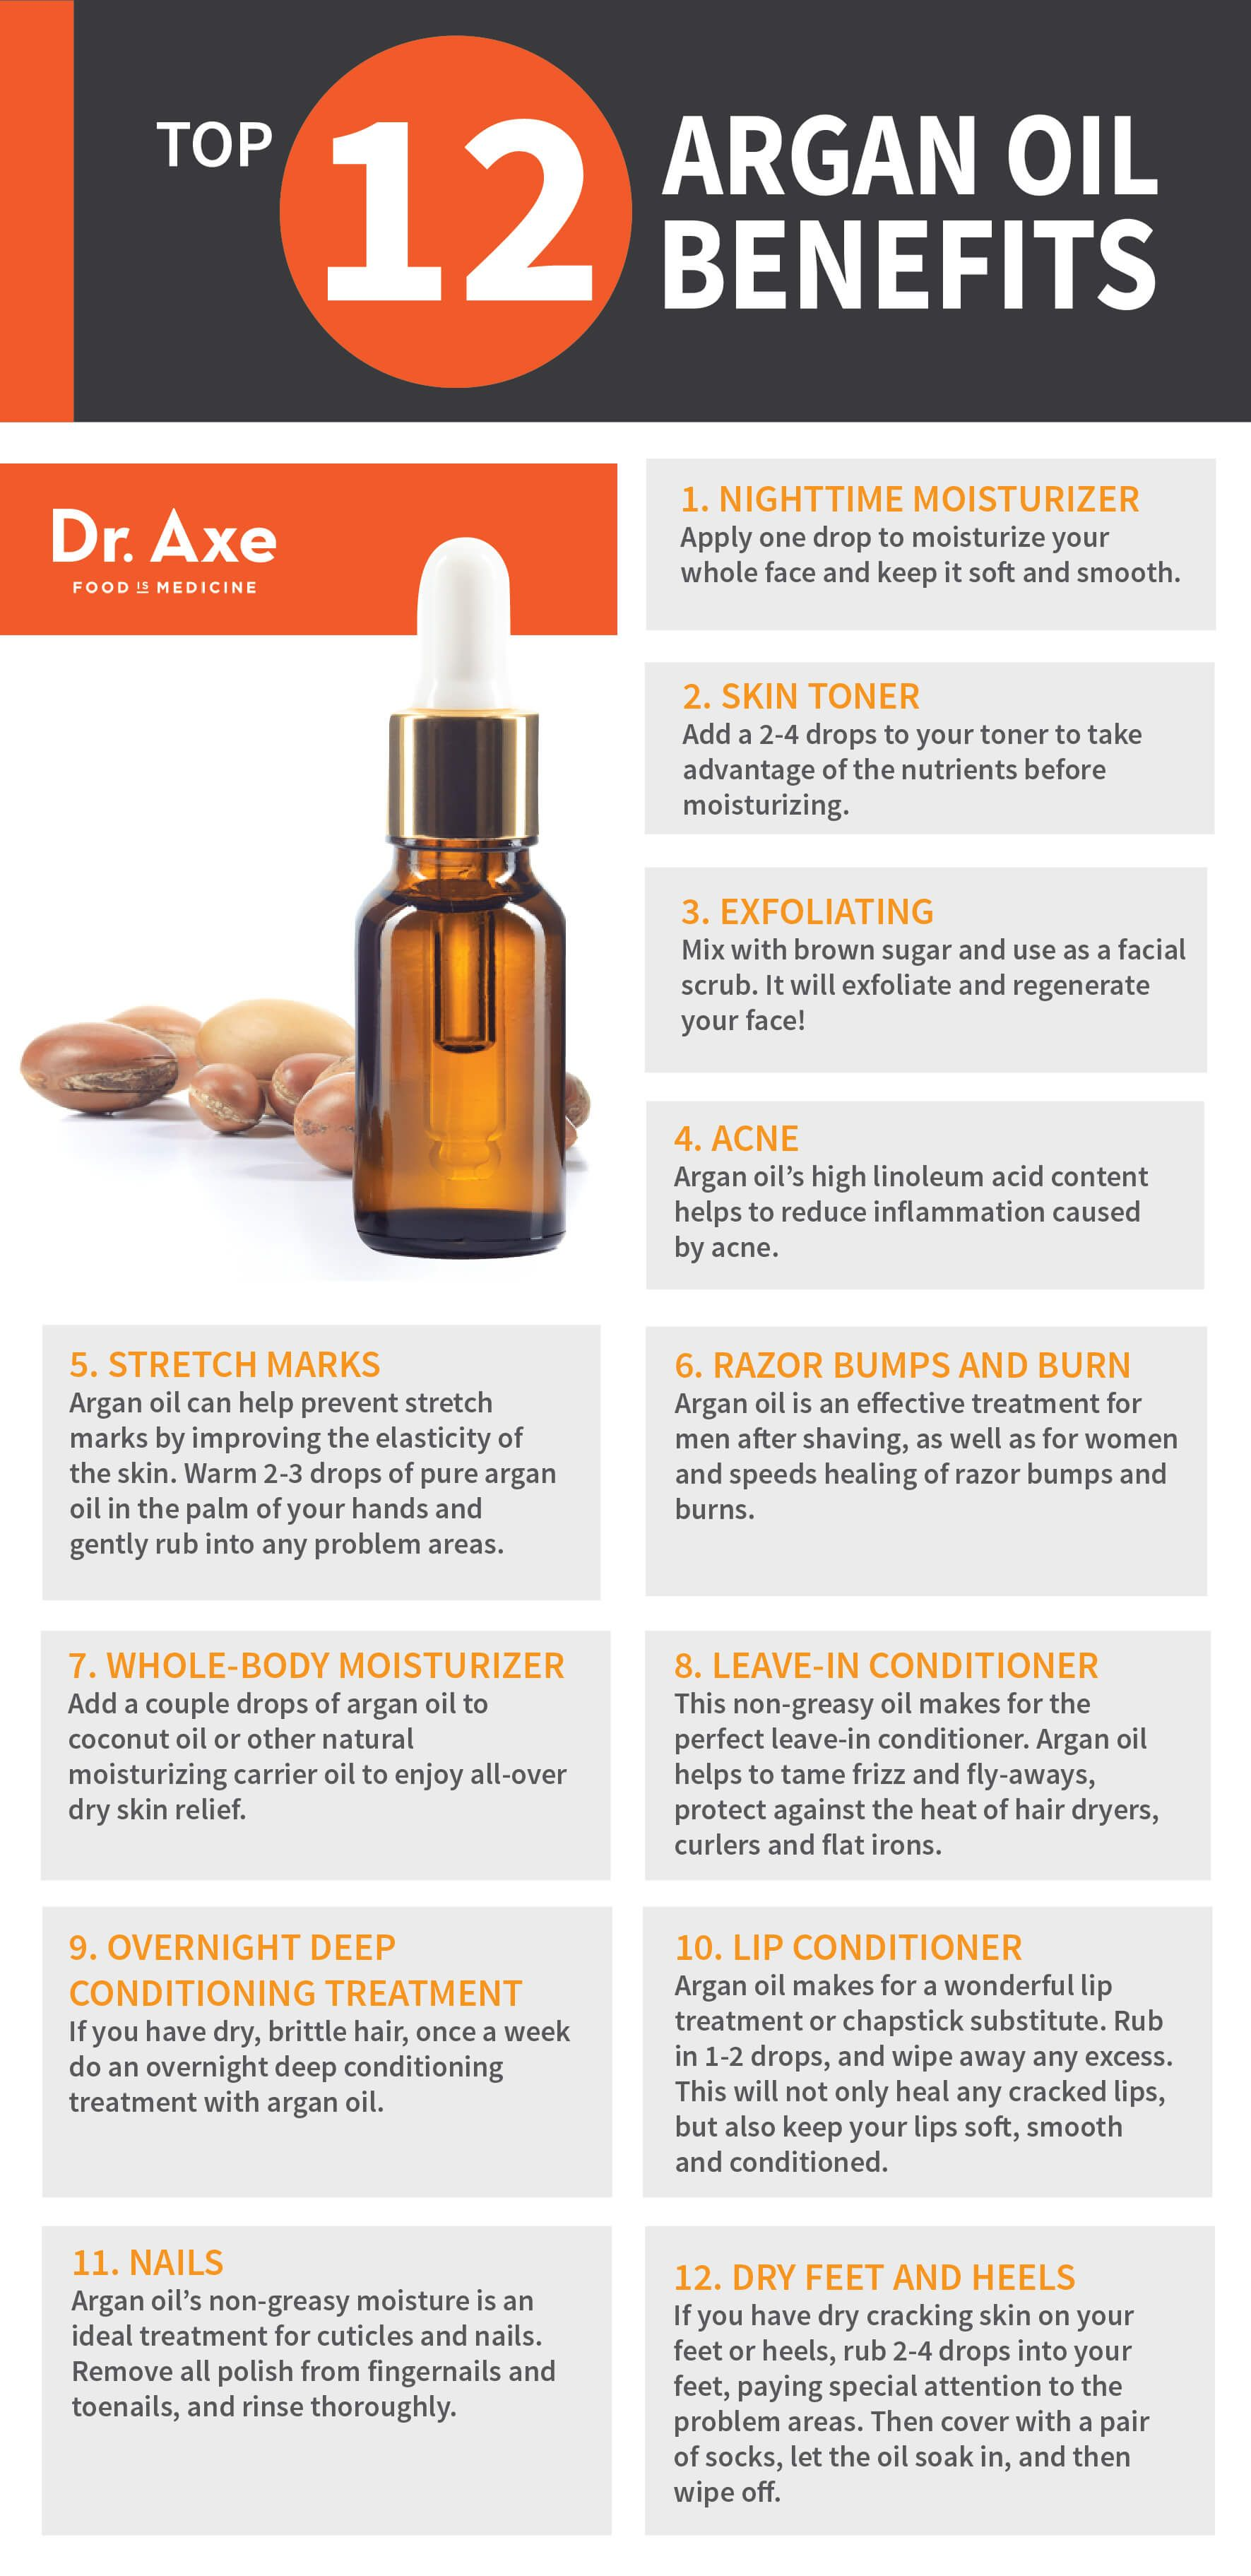 Argan Oil Benefits Top 12 Uses For Healthy Skin And Hair Argan